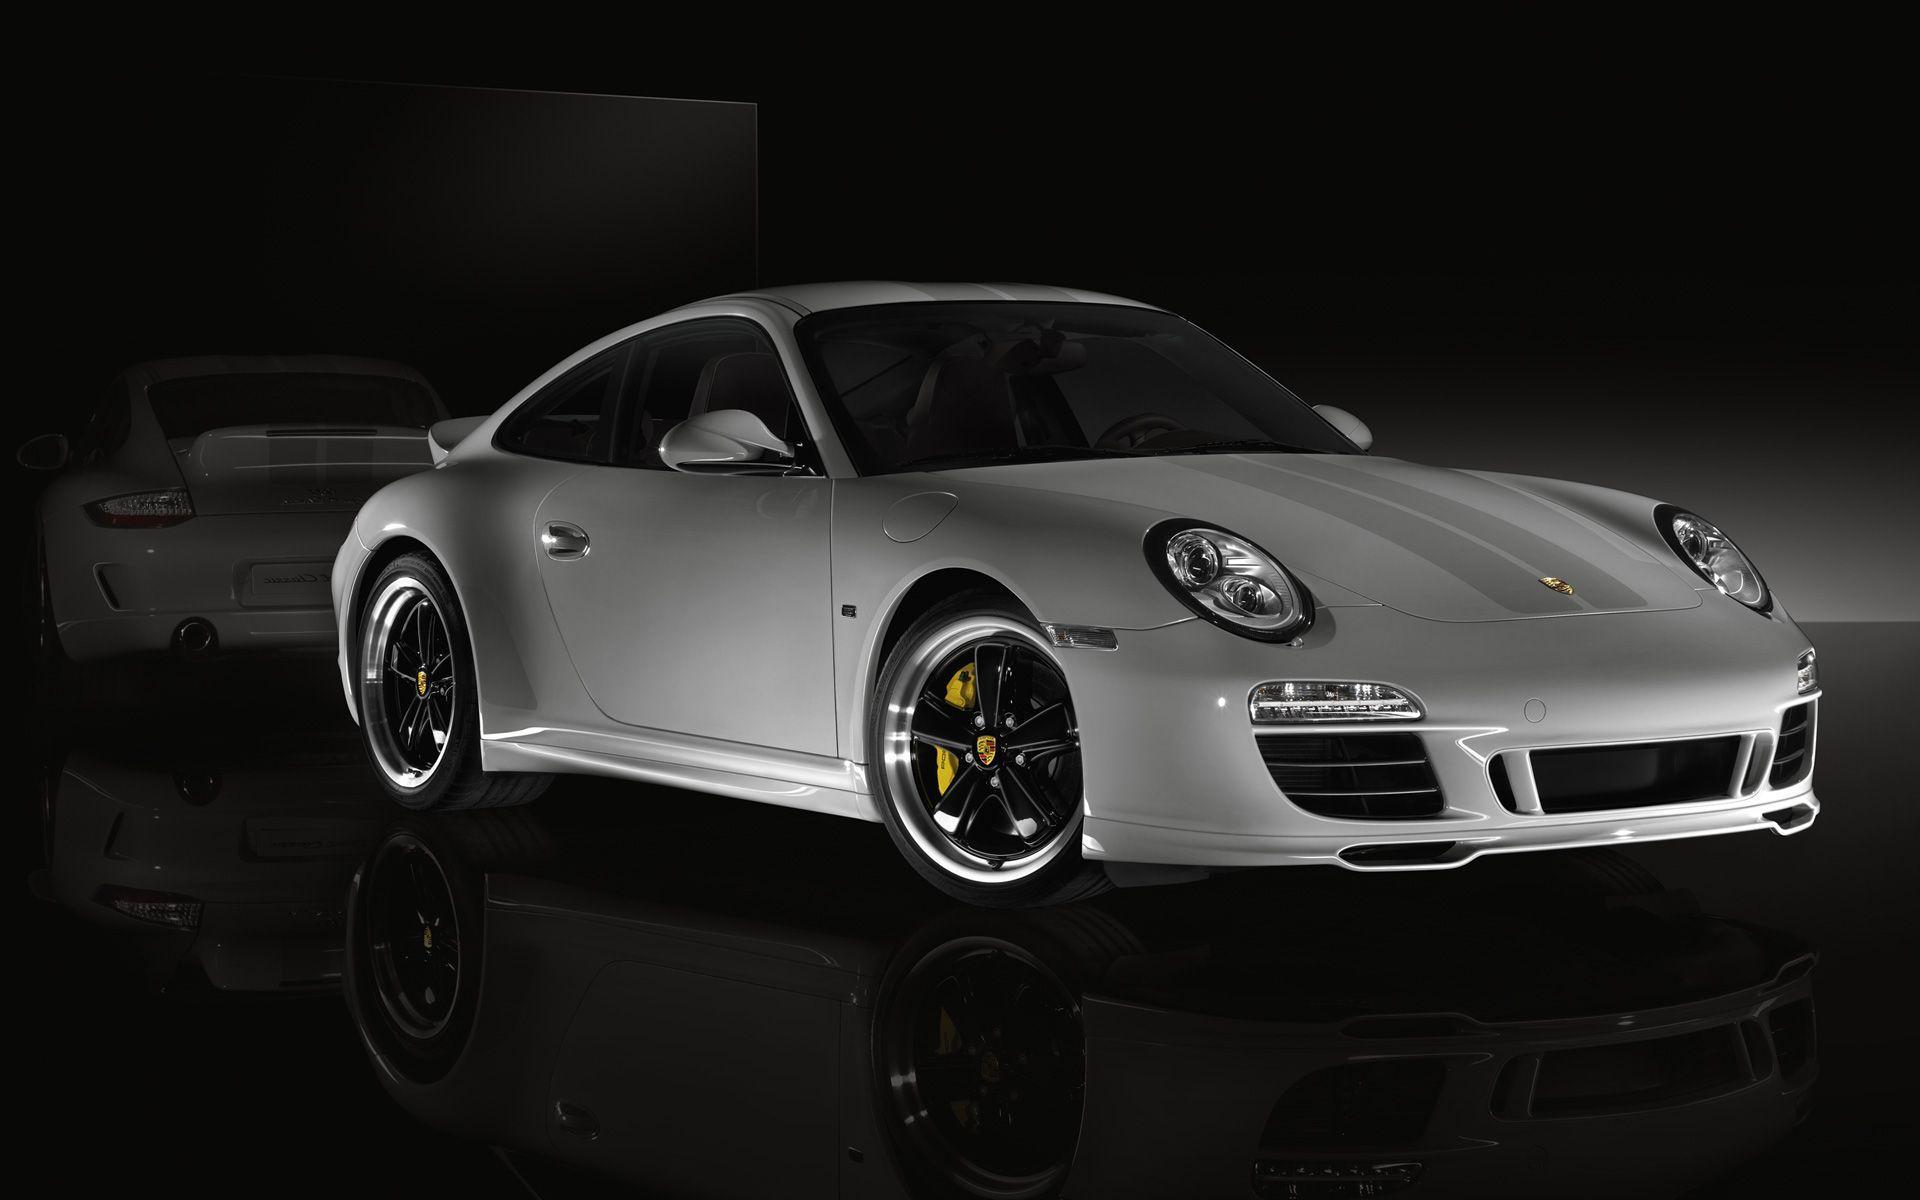 Classic Porsche 911 Iphone Wallpaper 18814 Full HD Wallpaper ...